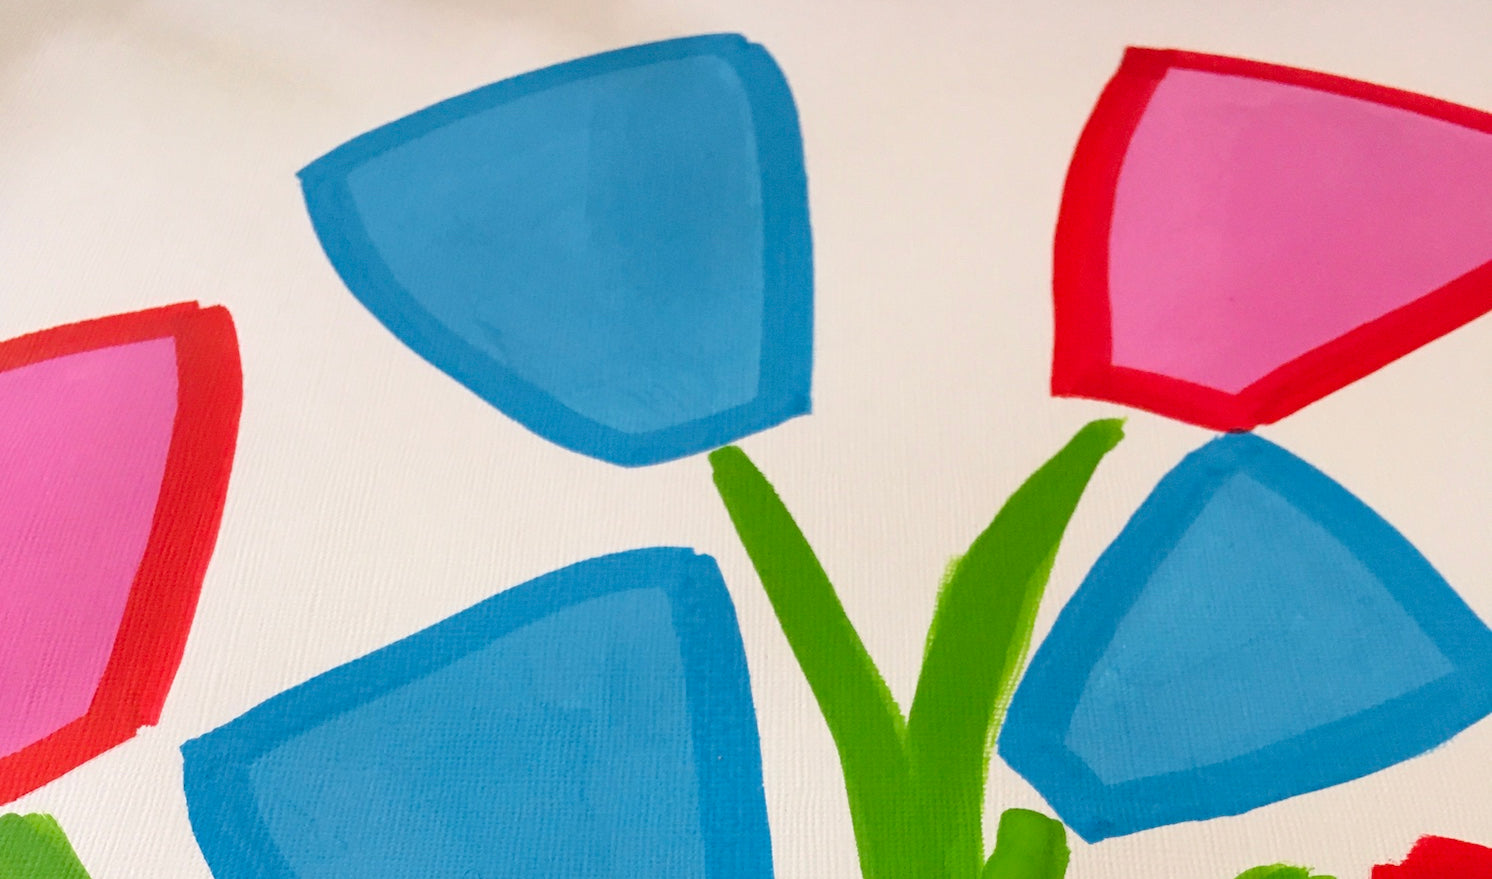 Teddy McDonald contemporary fine art plants flowers detail painting